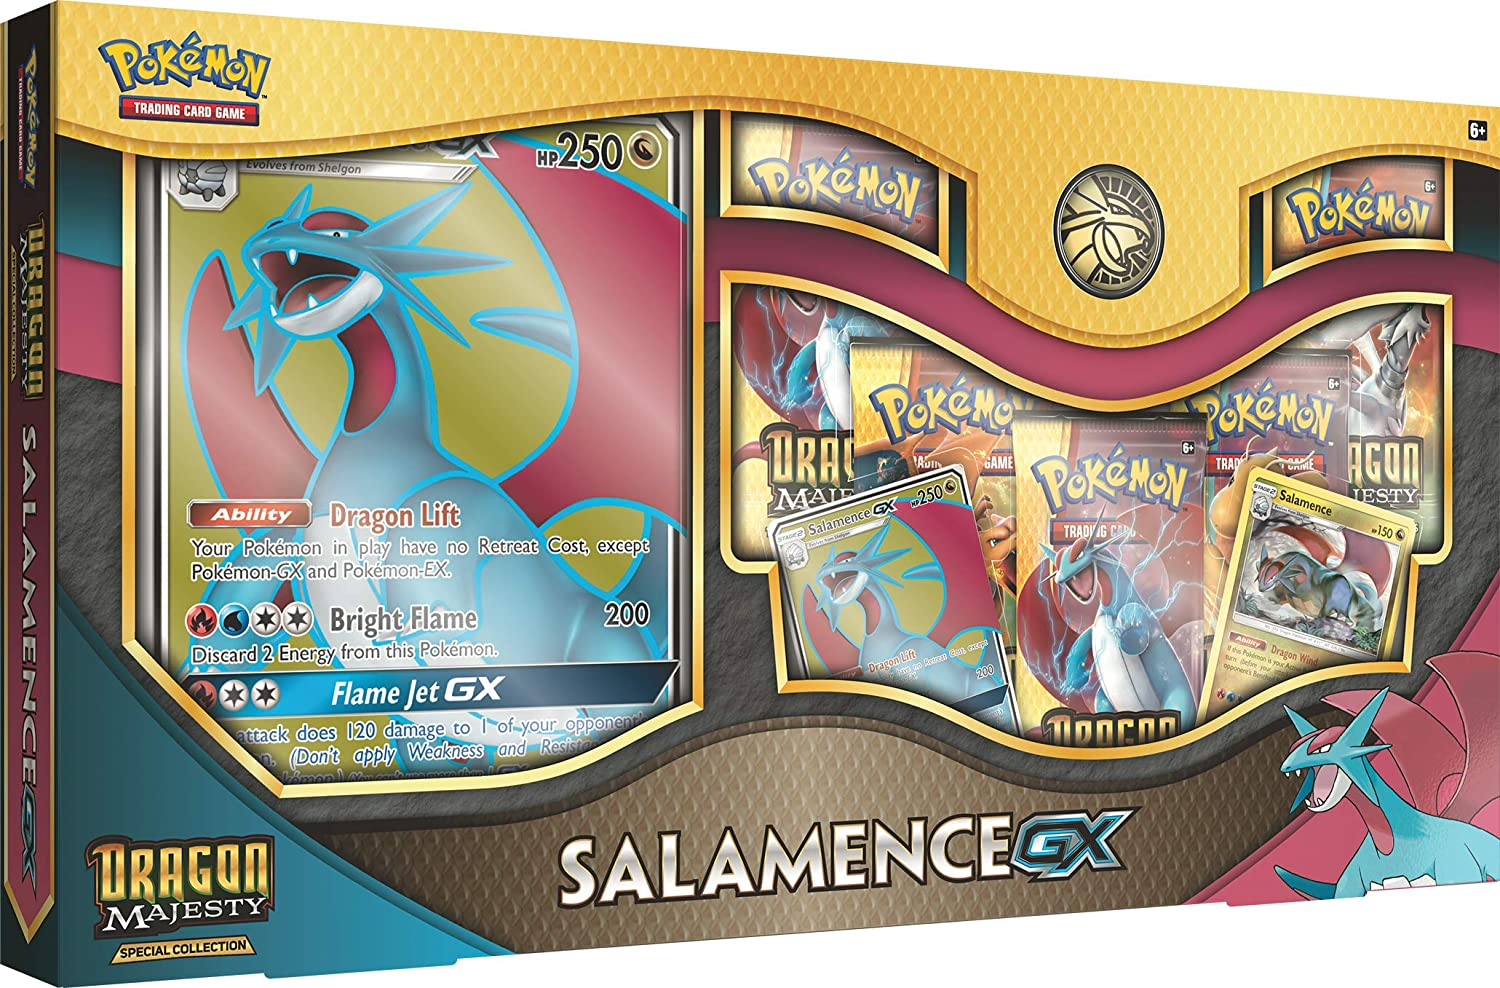 Pokemon POK80408 Pokémon TCG - , color/modelo surtido: Amazon.es ...